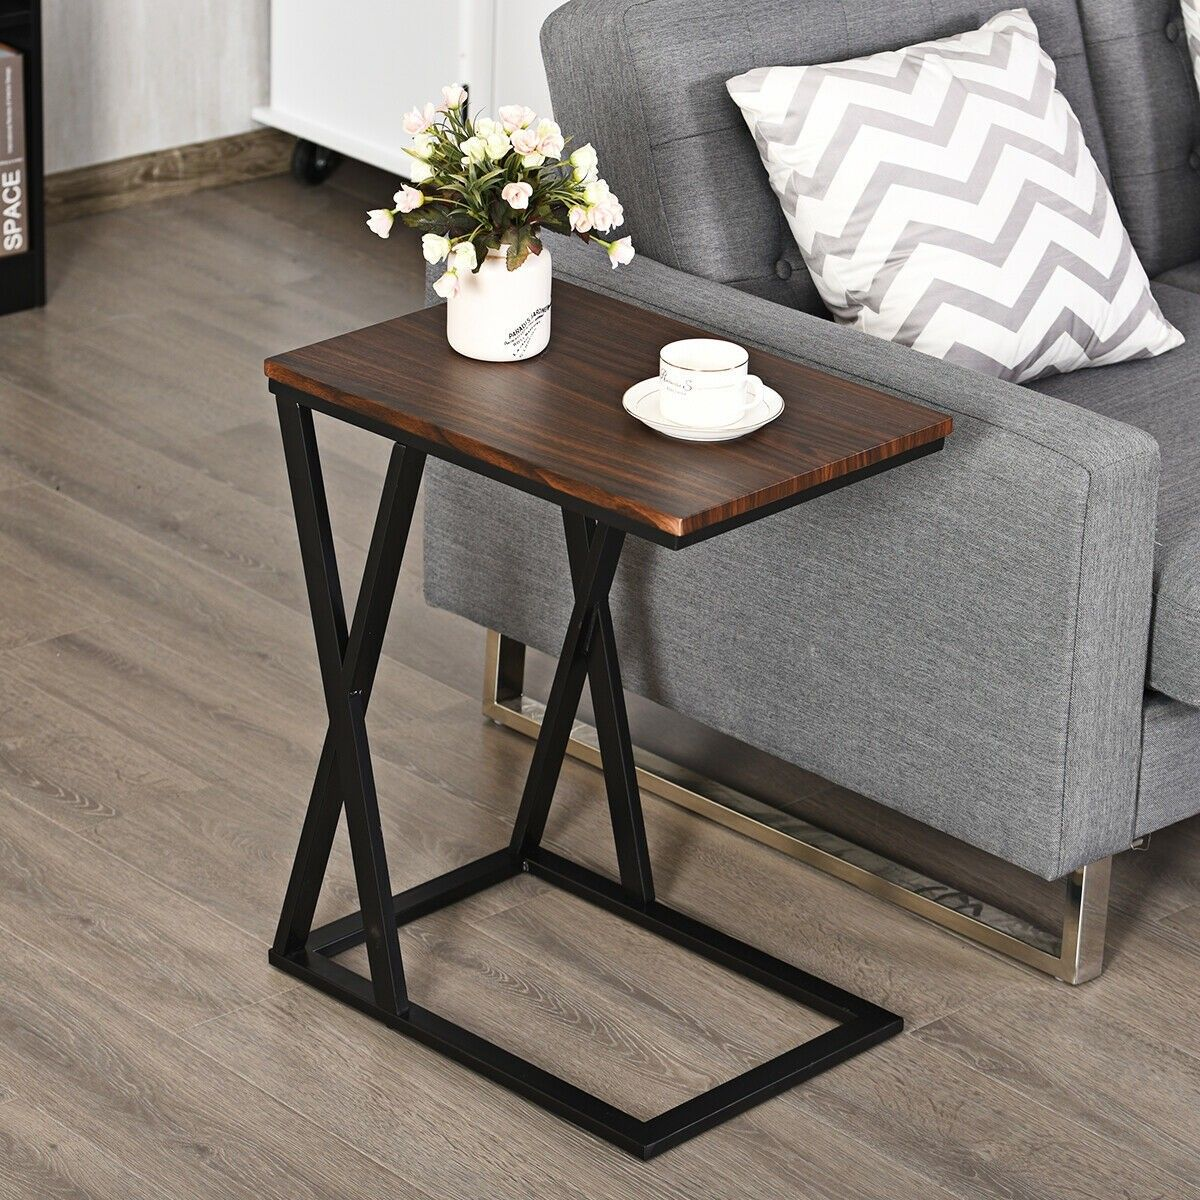 Living Room Sofa Side Laptop Snack Table Side Table Decor Table Decor Living Room Living Room End Tables